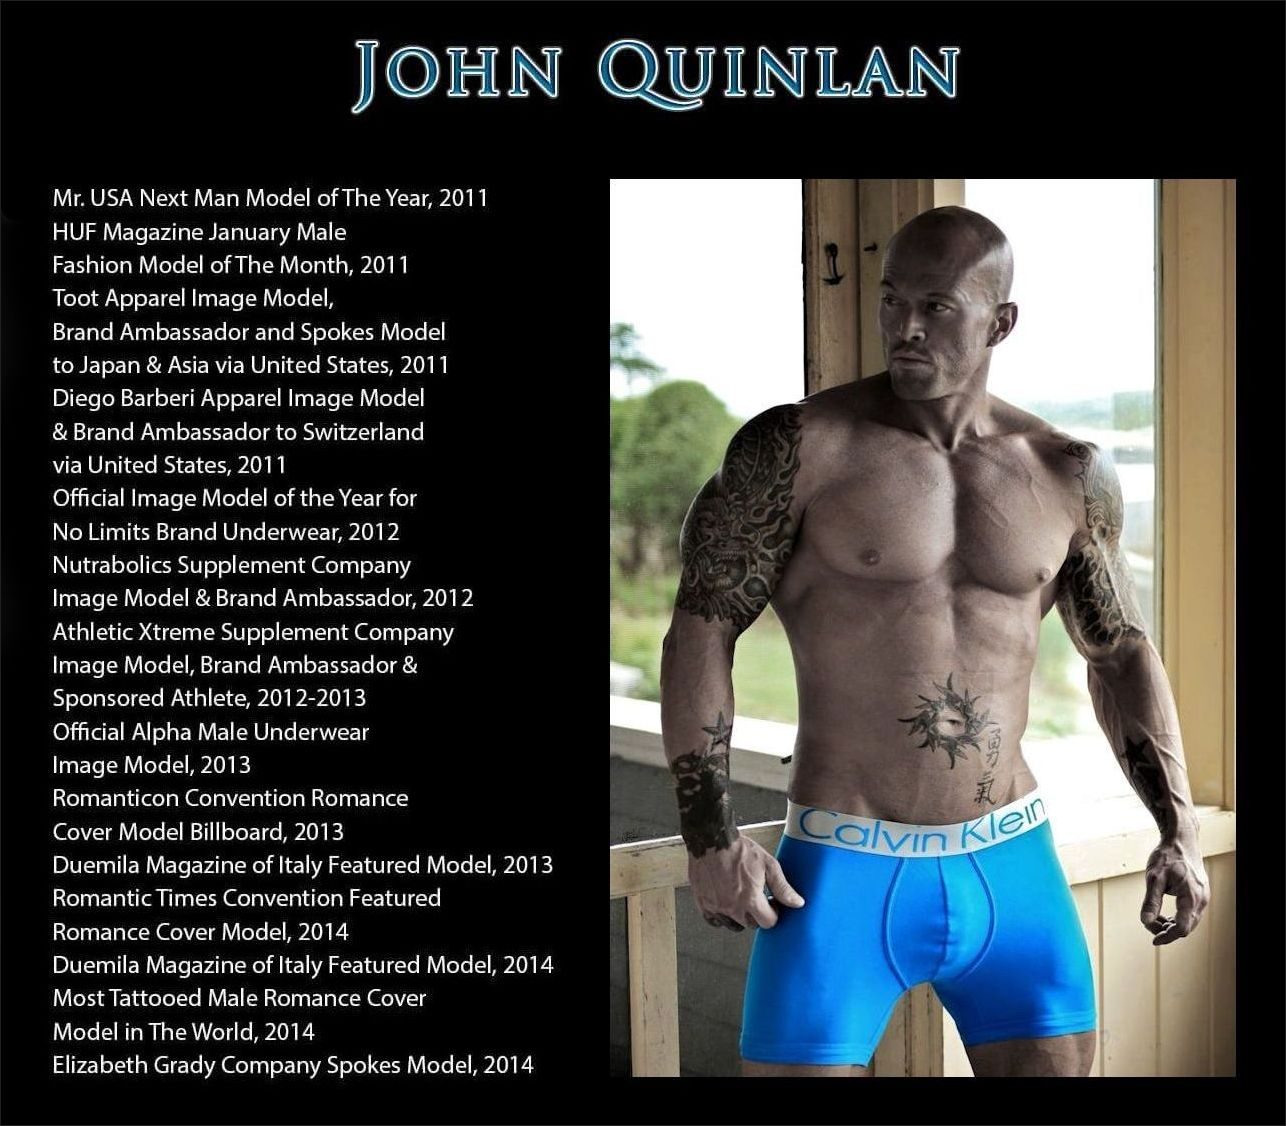 Celebrity Romance Cover Model & Actor John Joseph Quinlan in Calvin Klein #JohnQuinlan